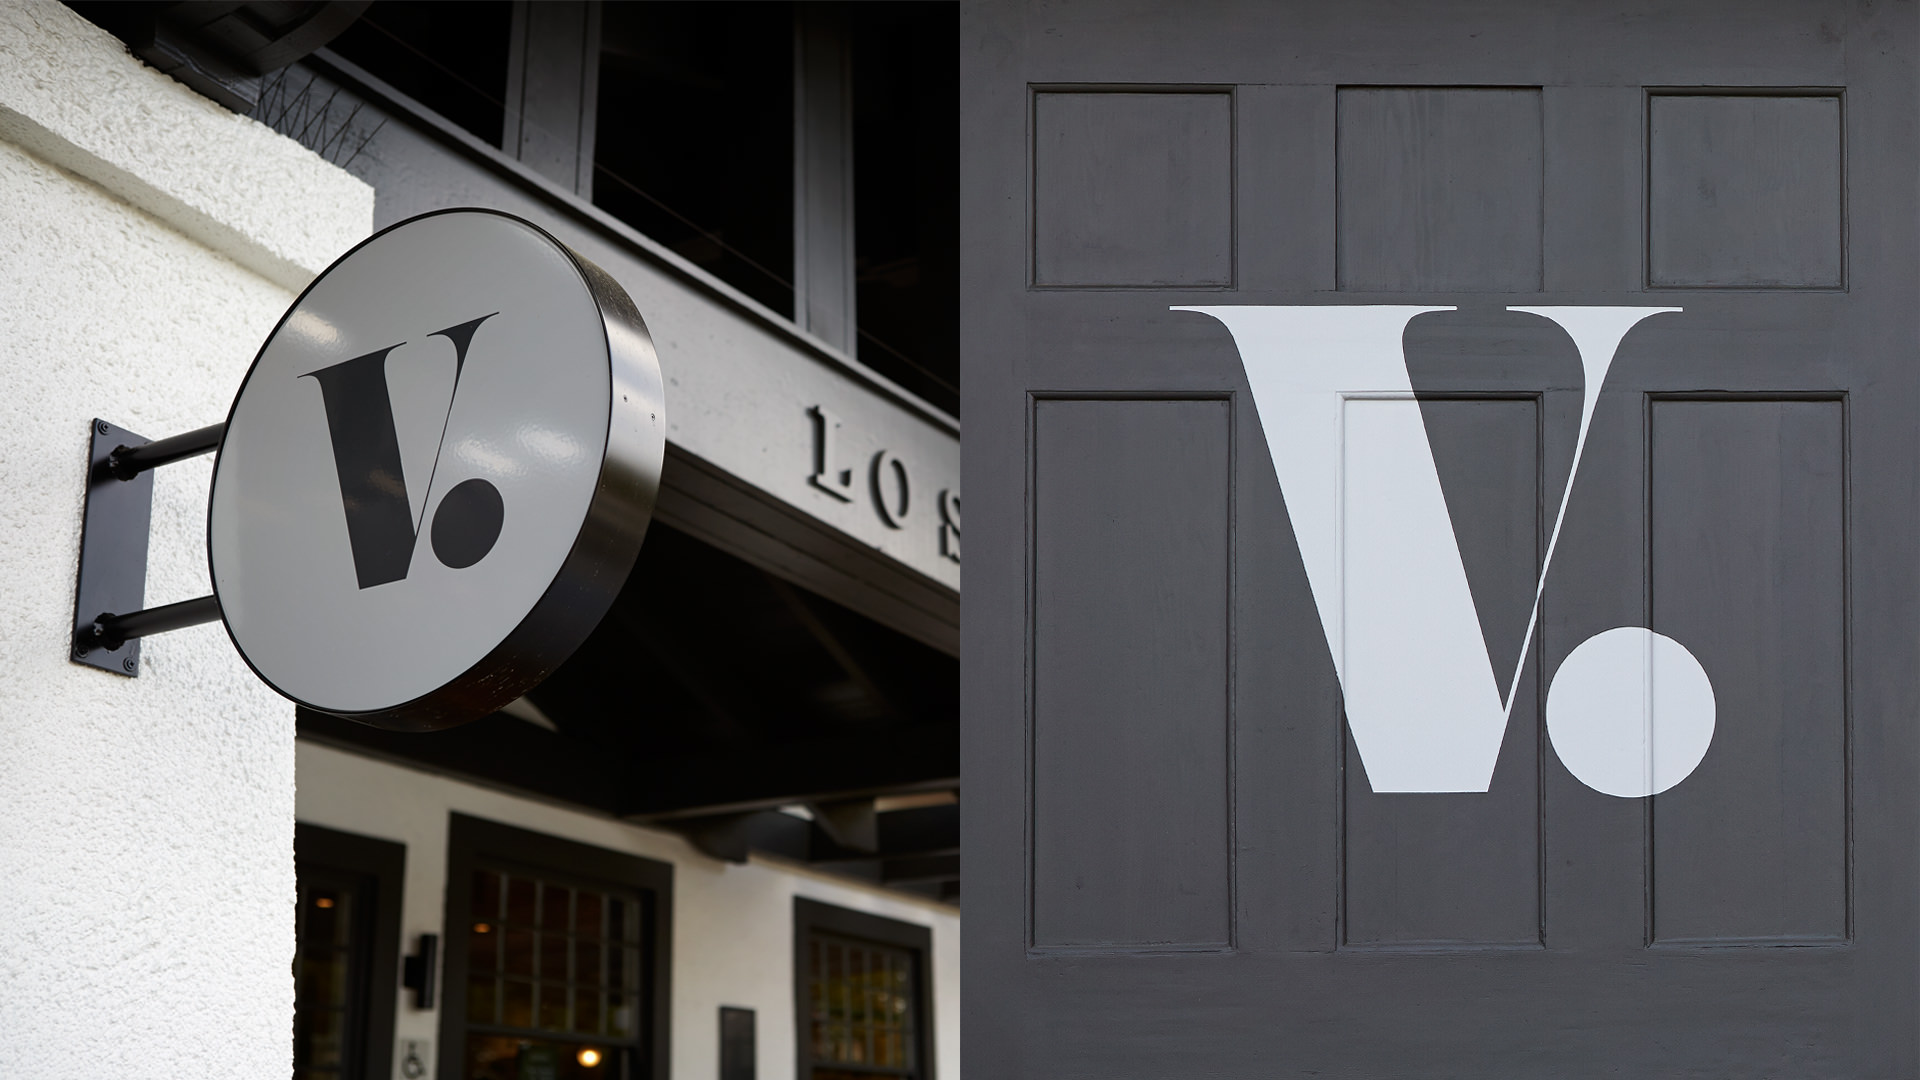 Voyageur du Temps restaurant and bakery branding by Character